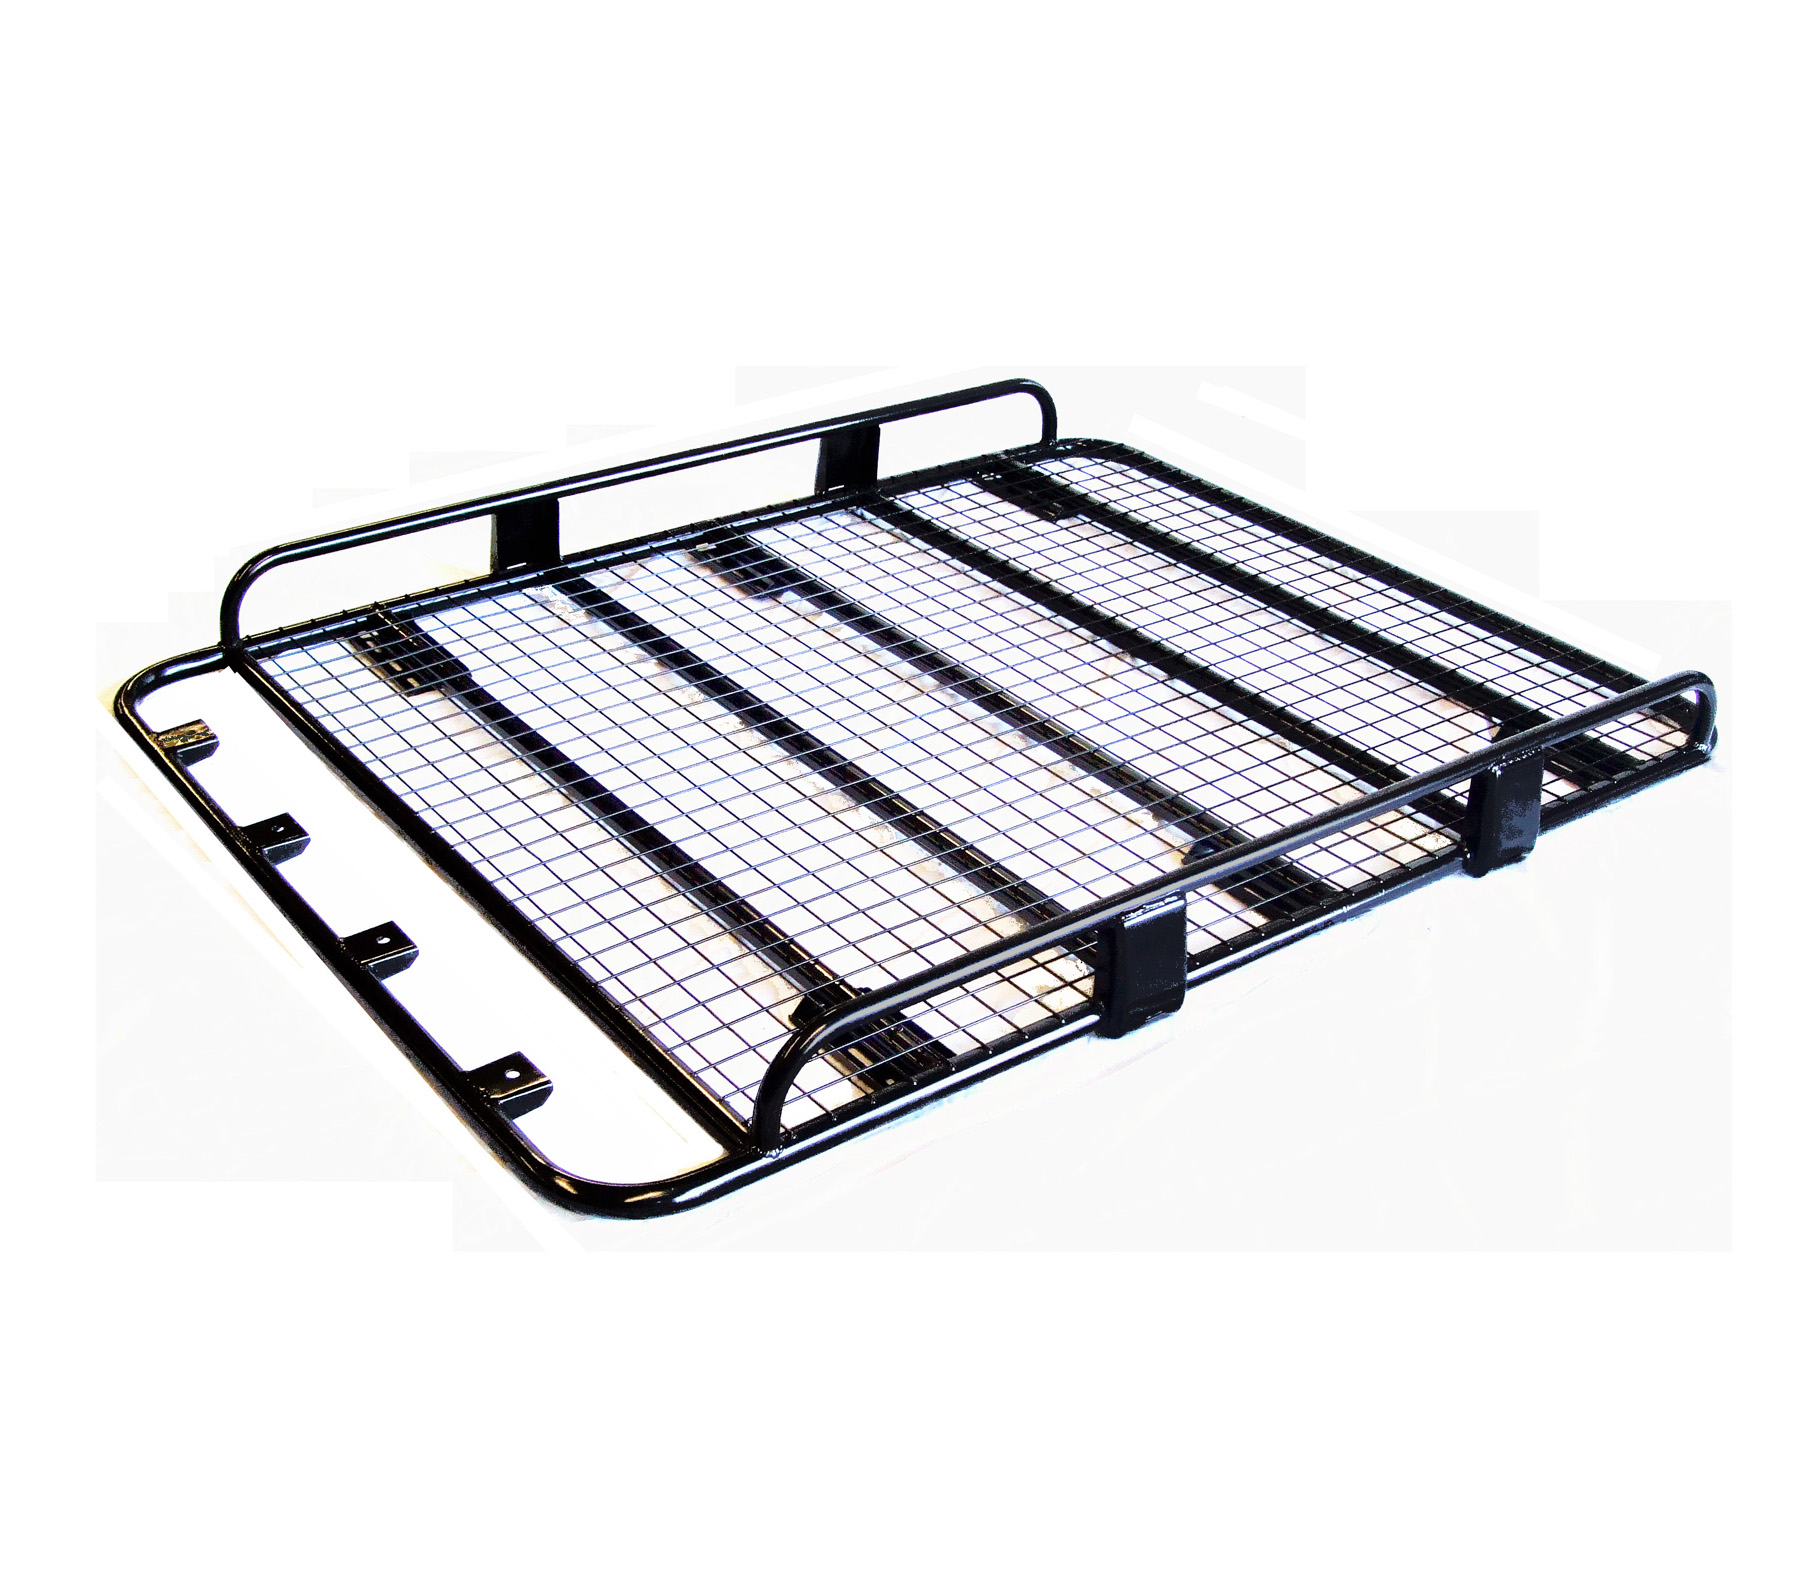 carriers truck kayak and racks tm bike handirack roof inflatable car rack previous